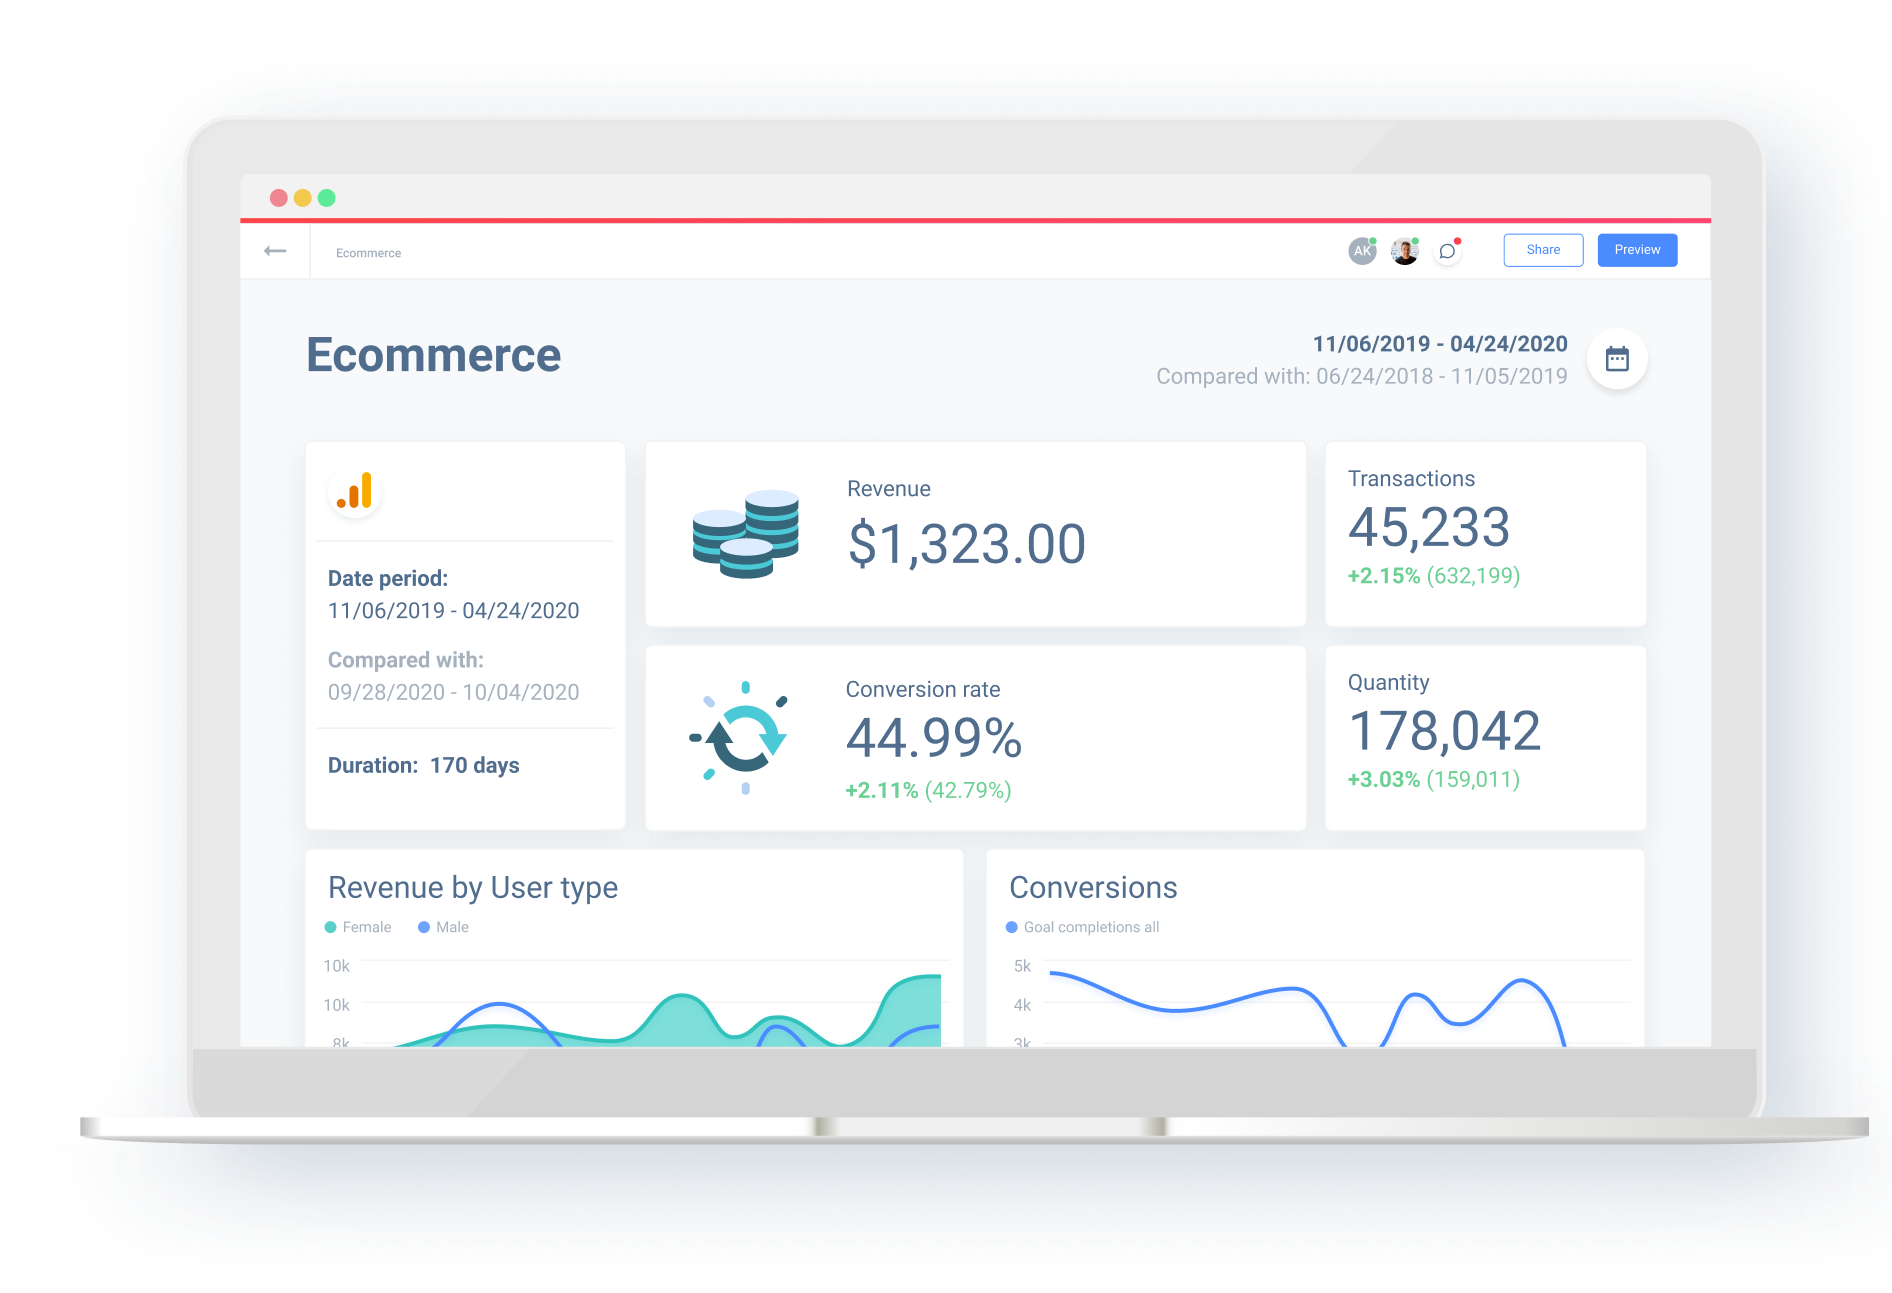 Ecommerce reportinh